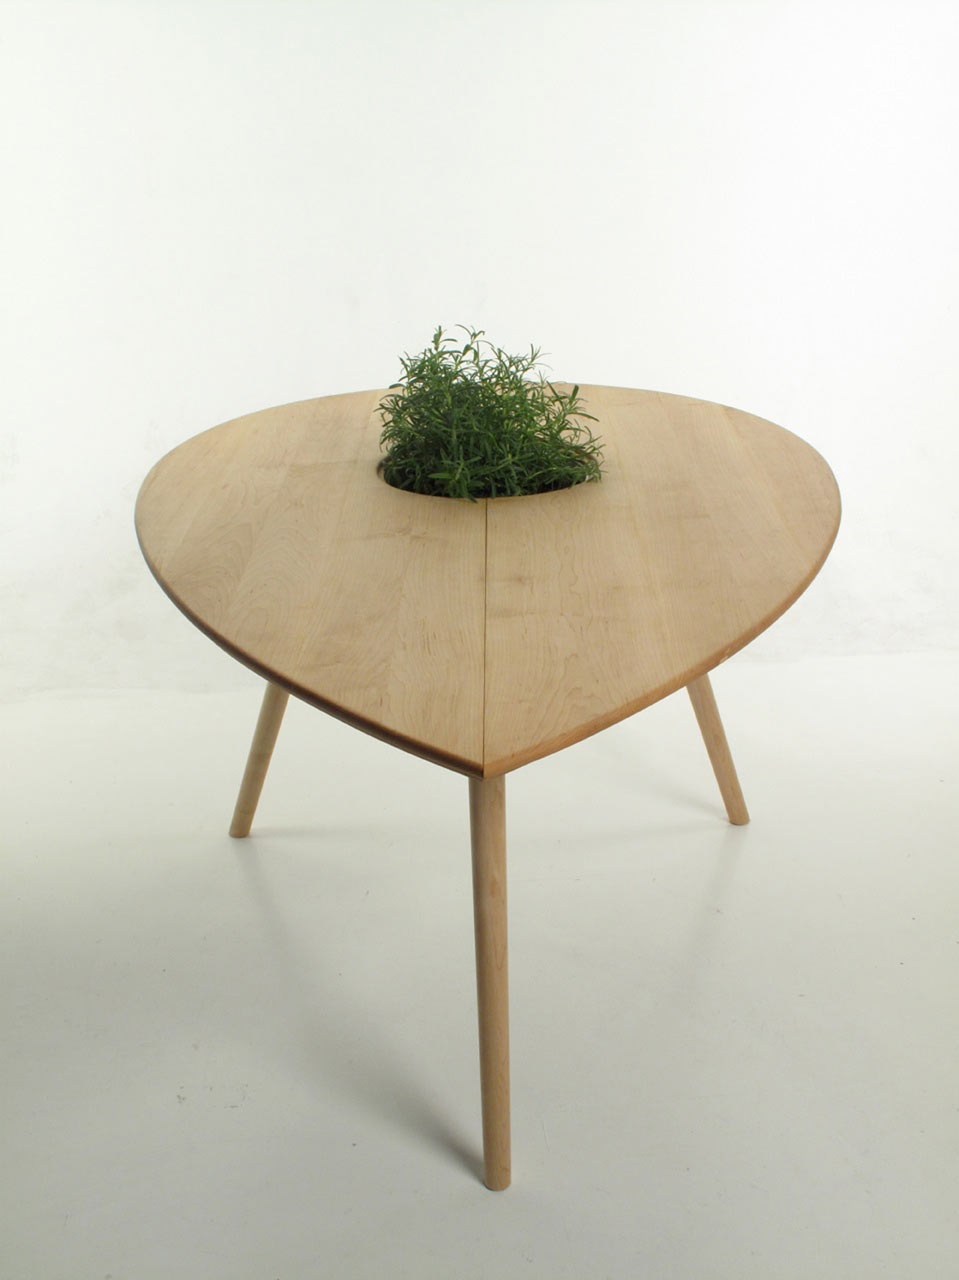 Philipp-Von-Hase-2-Spire-Table